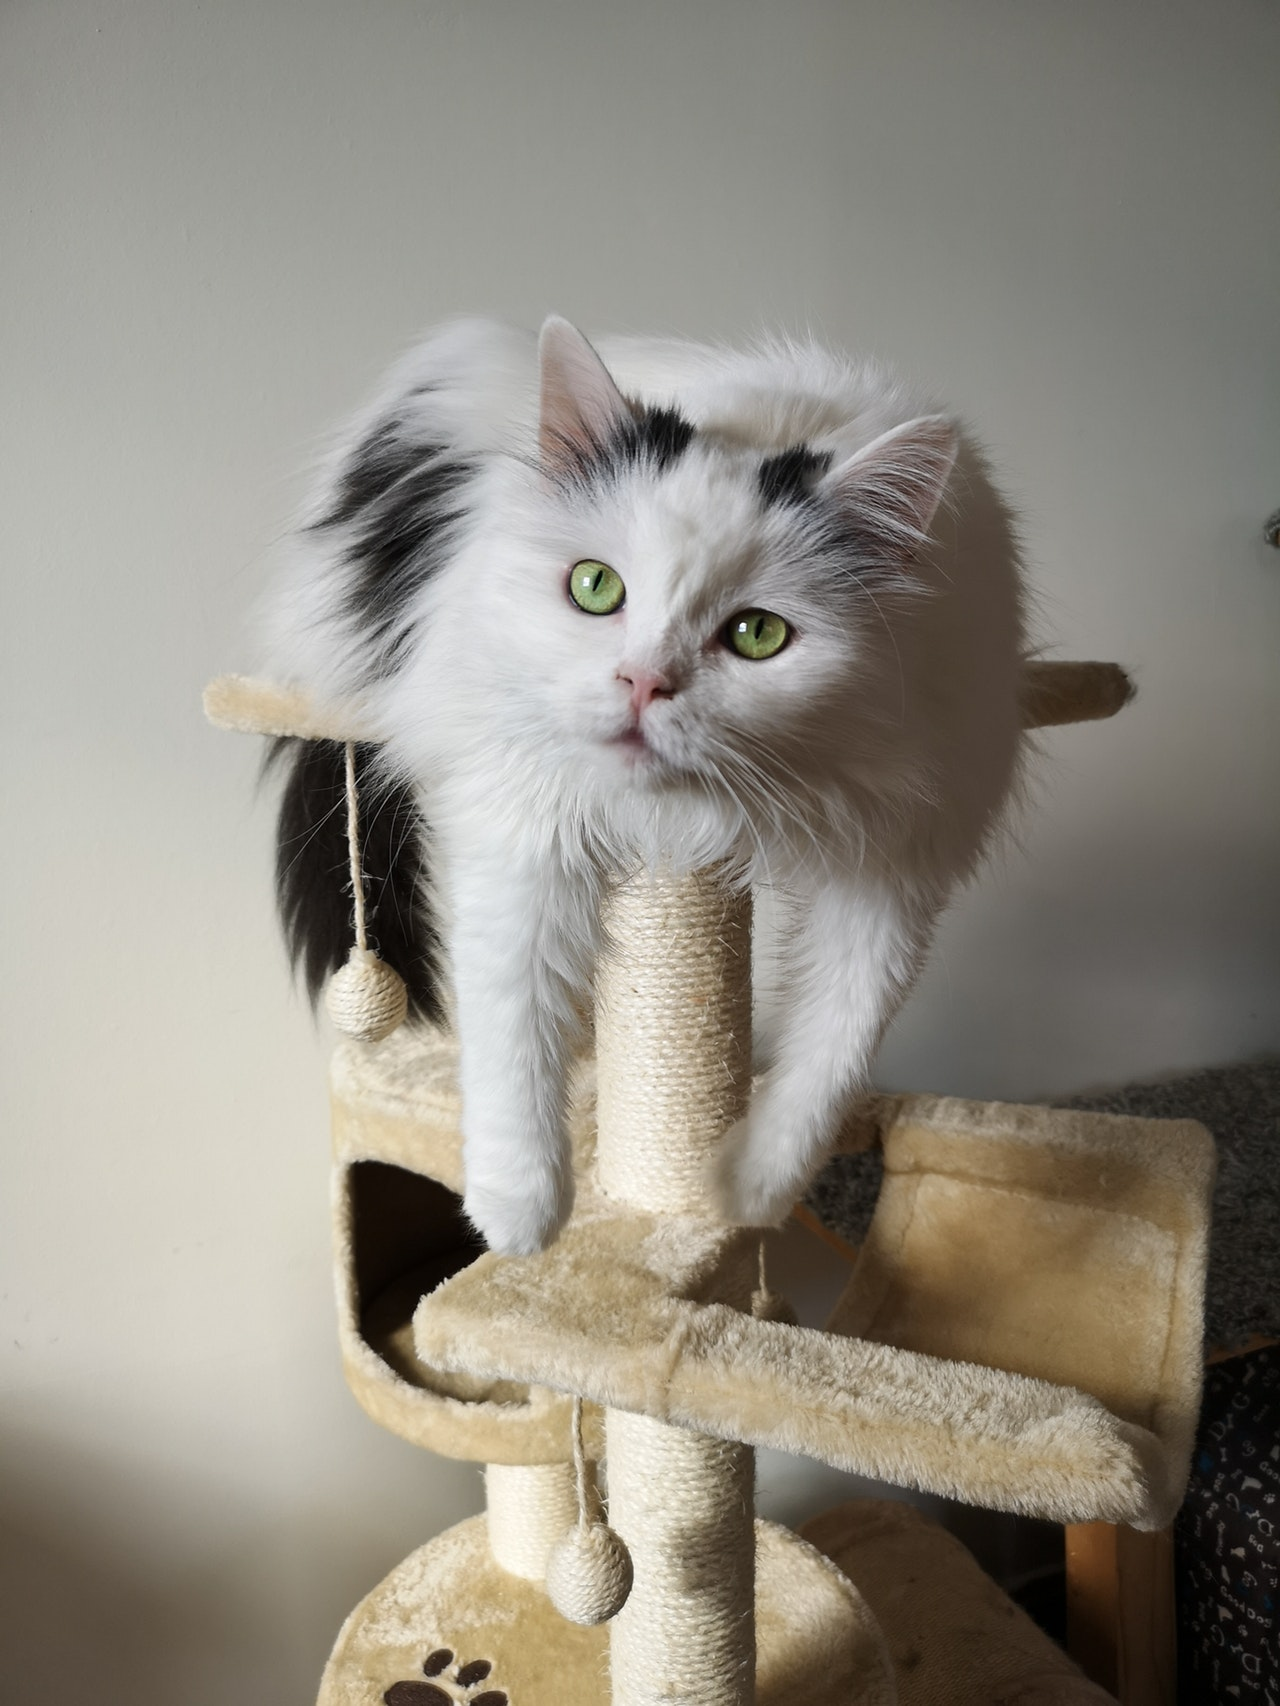 Fluffy cat lounging on a cat tree